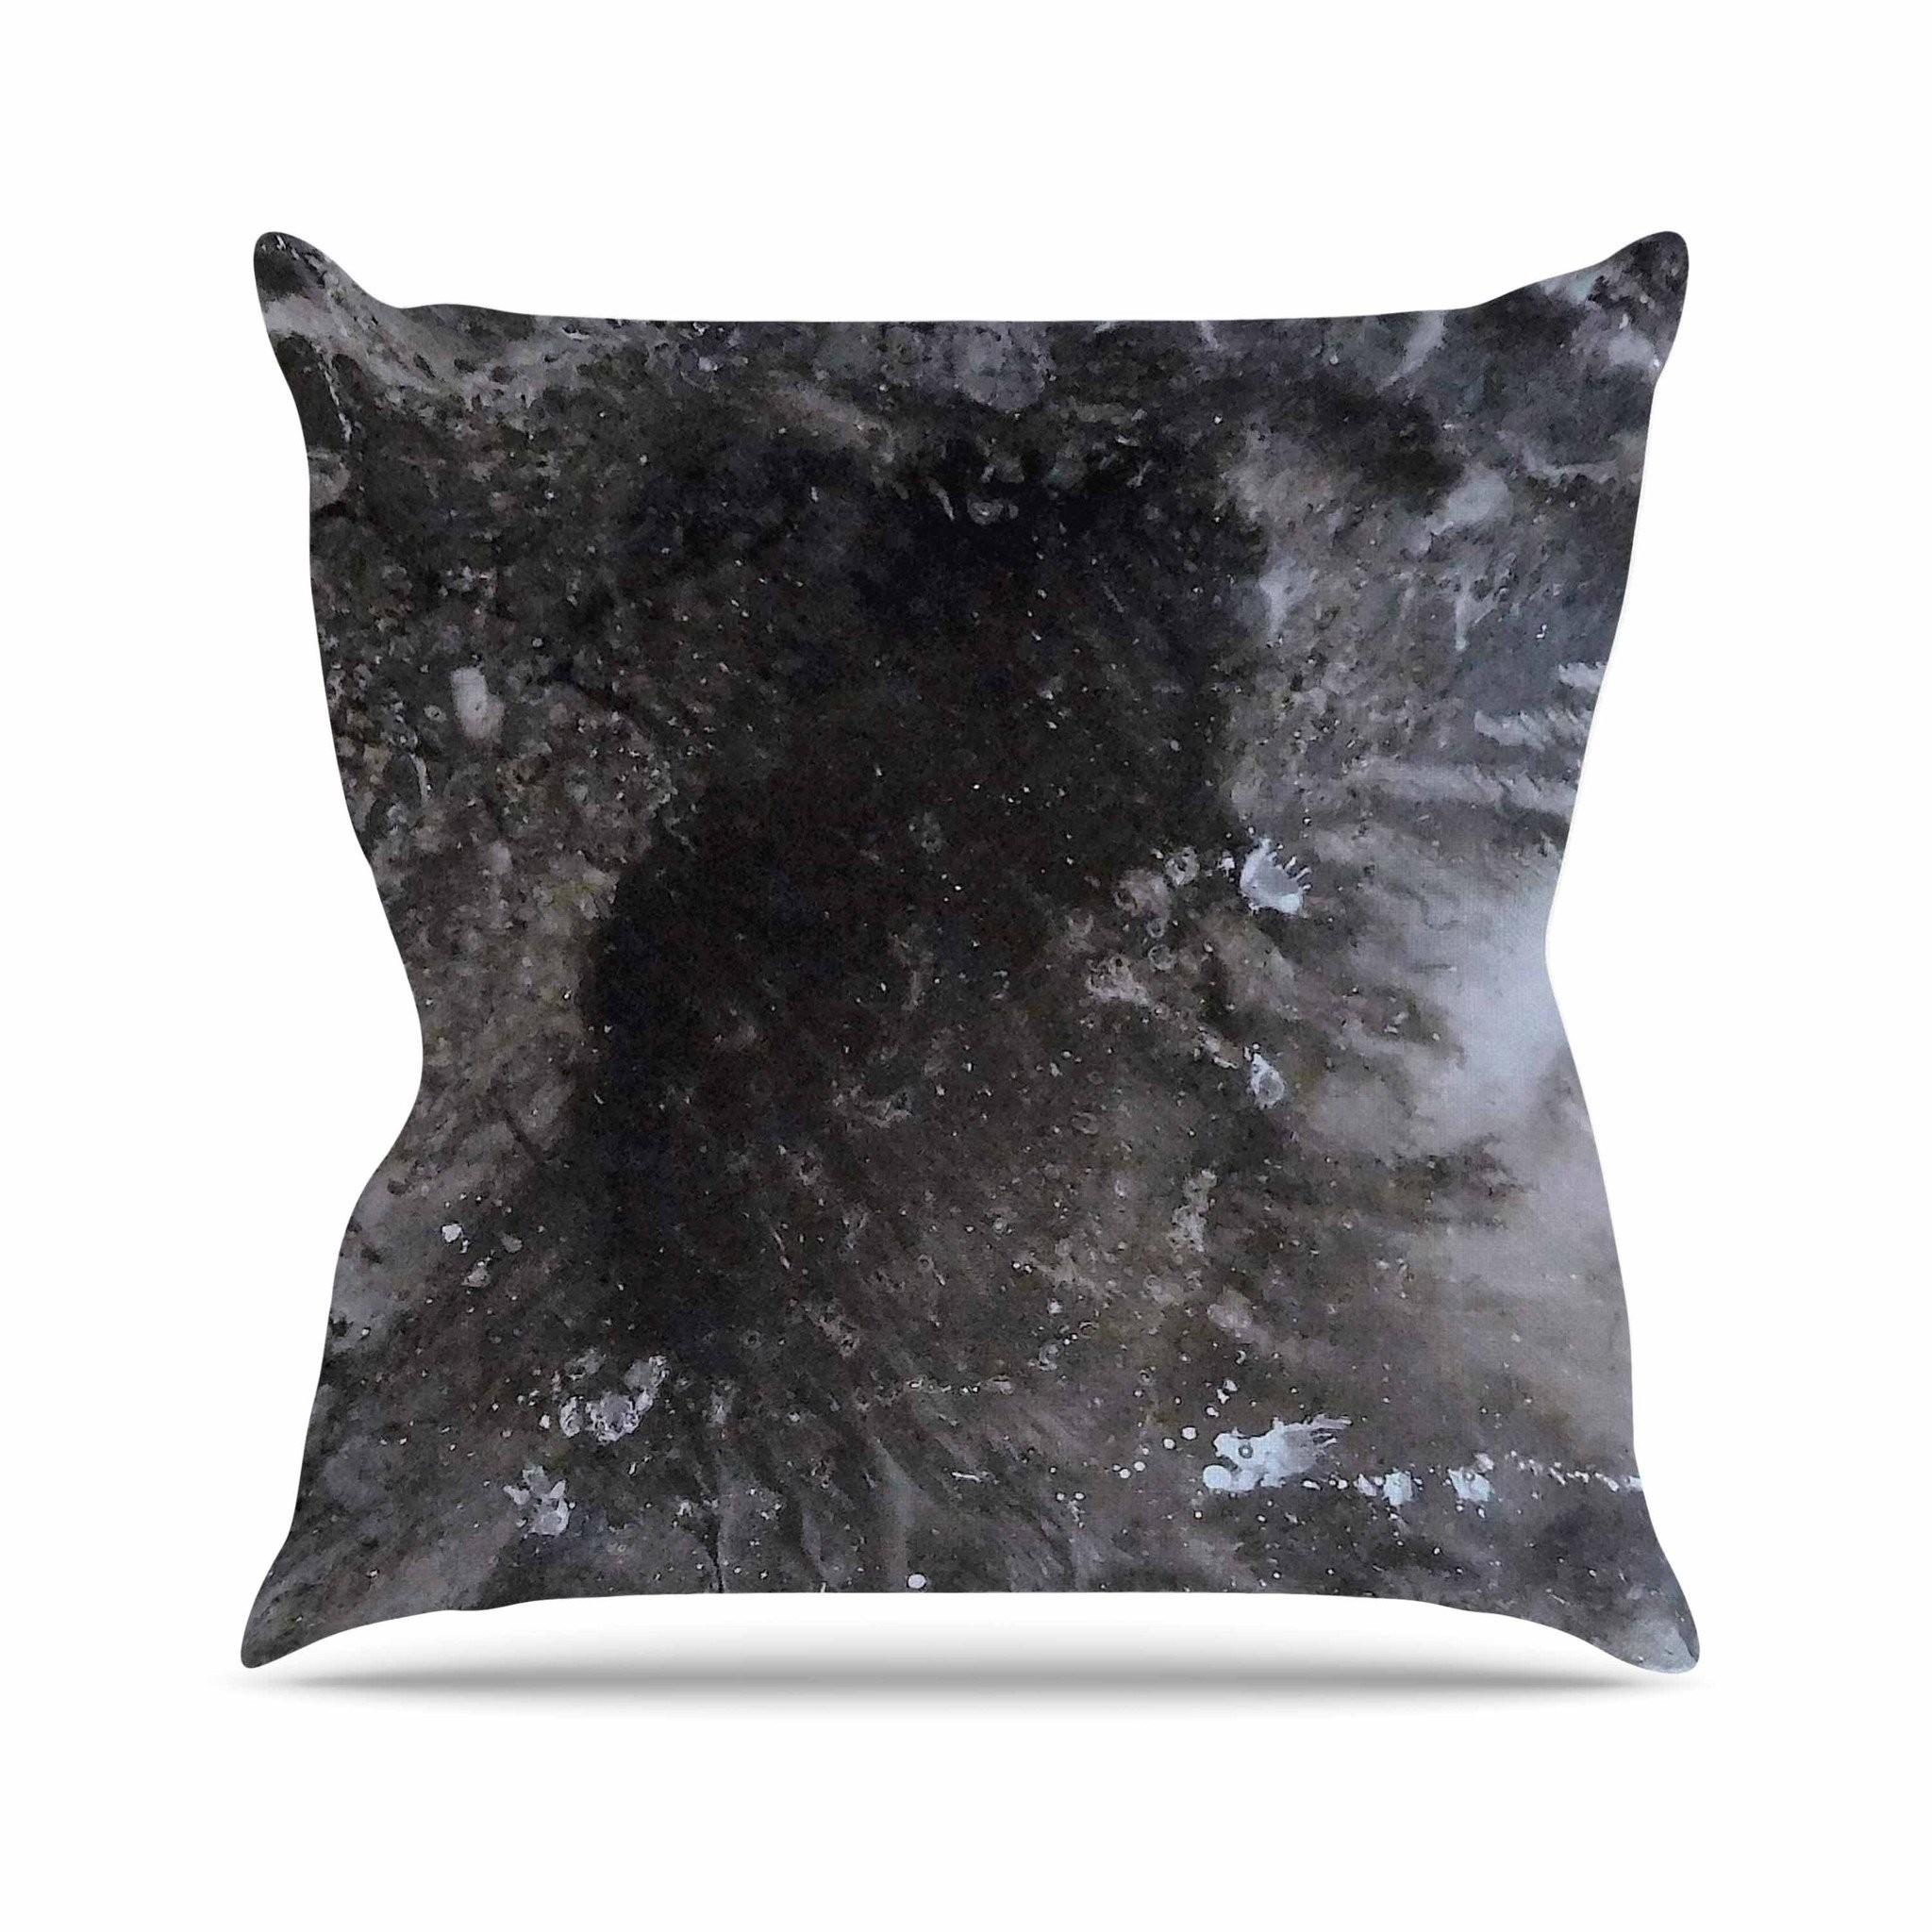 Ingrid Beddoes Make Wish Throw Pillow Kess Inhouse